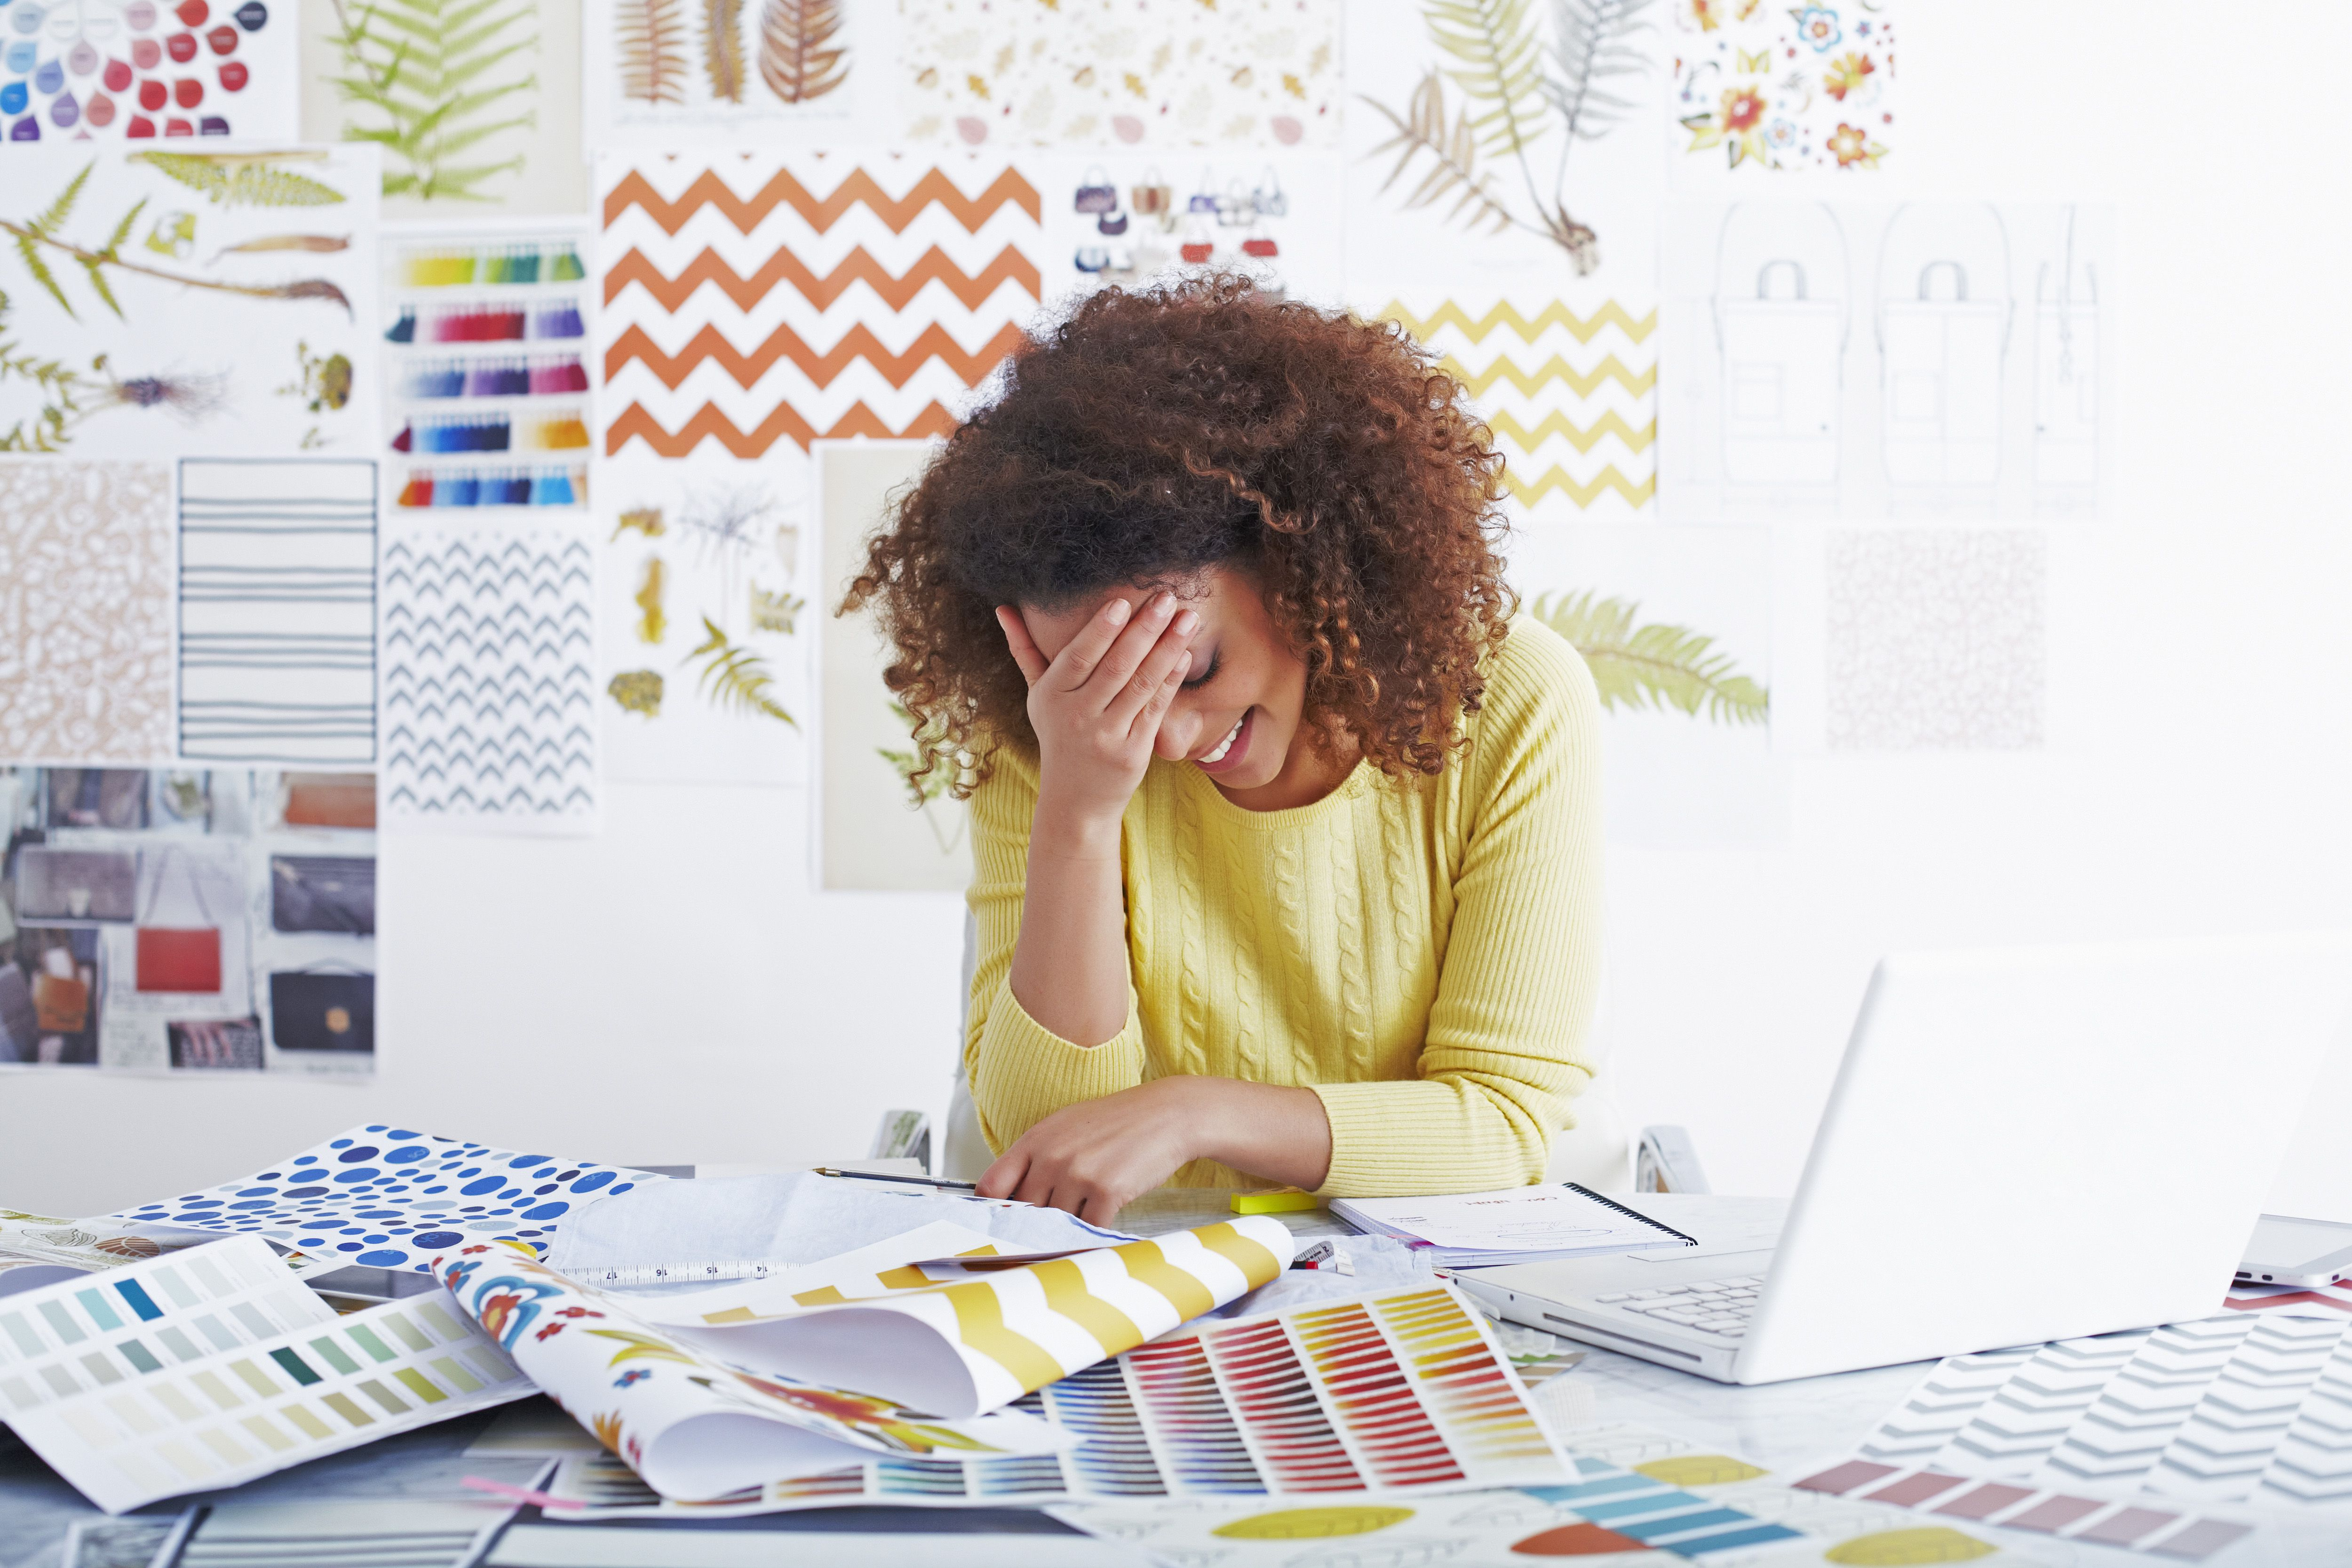 Woman smiling at her desk looking at pattern and color samples.